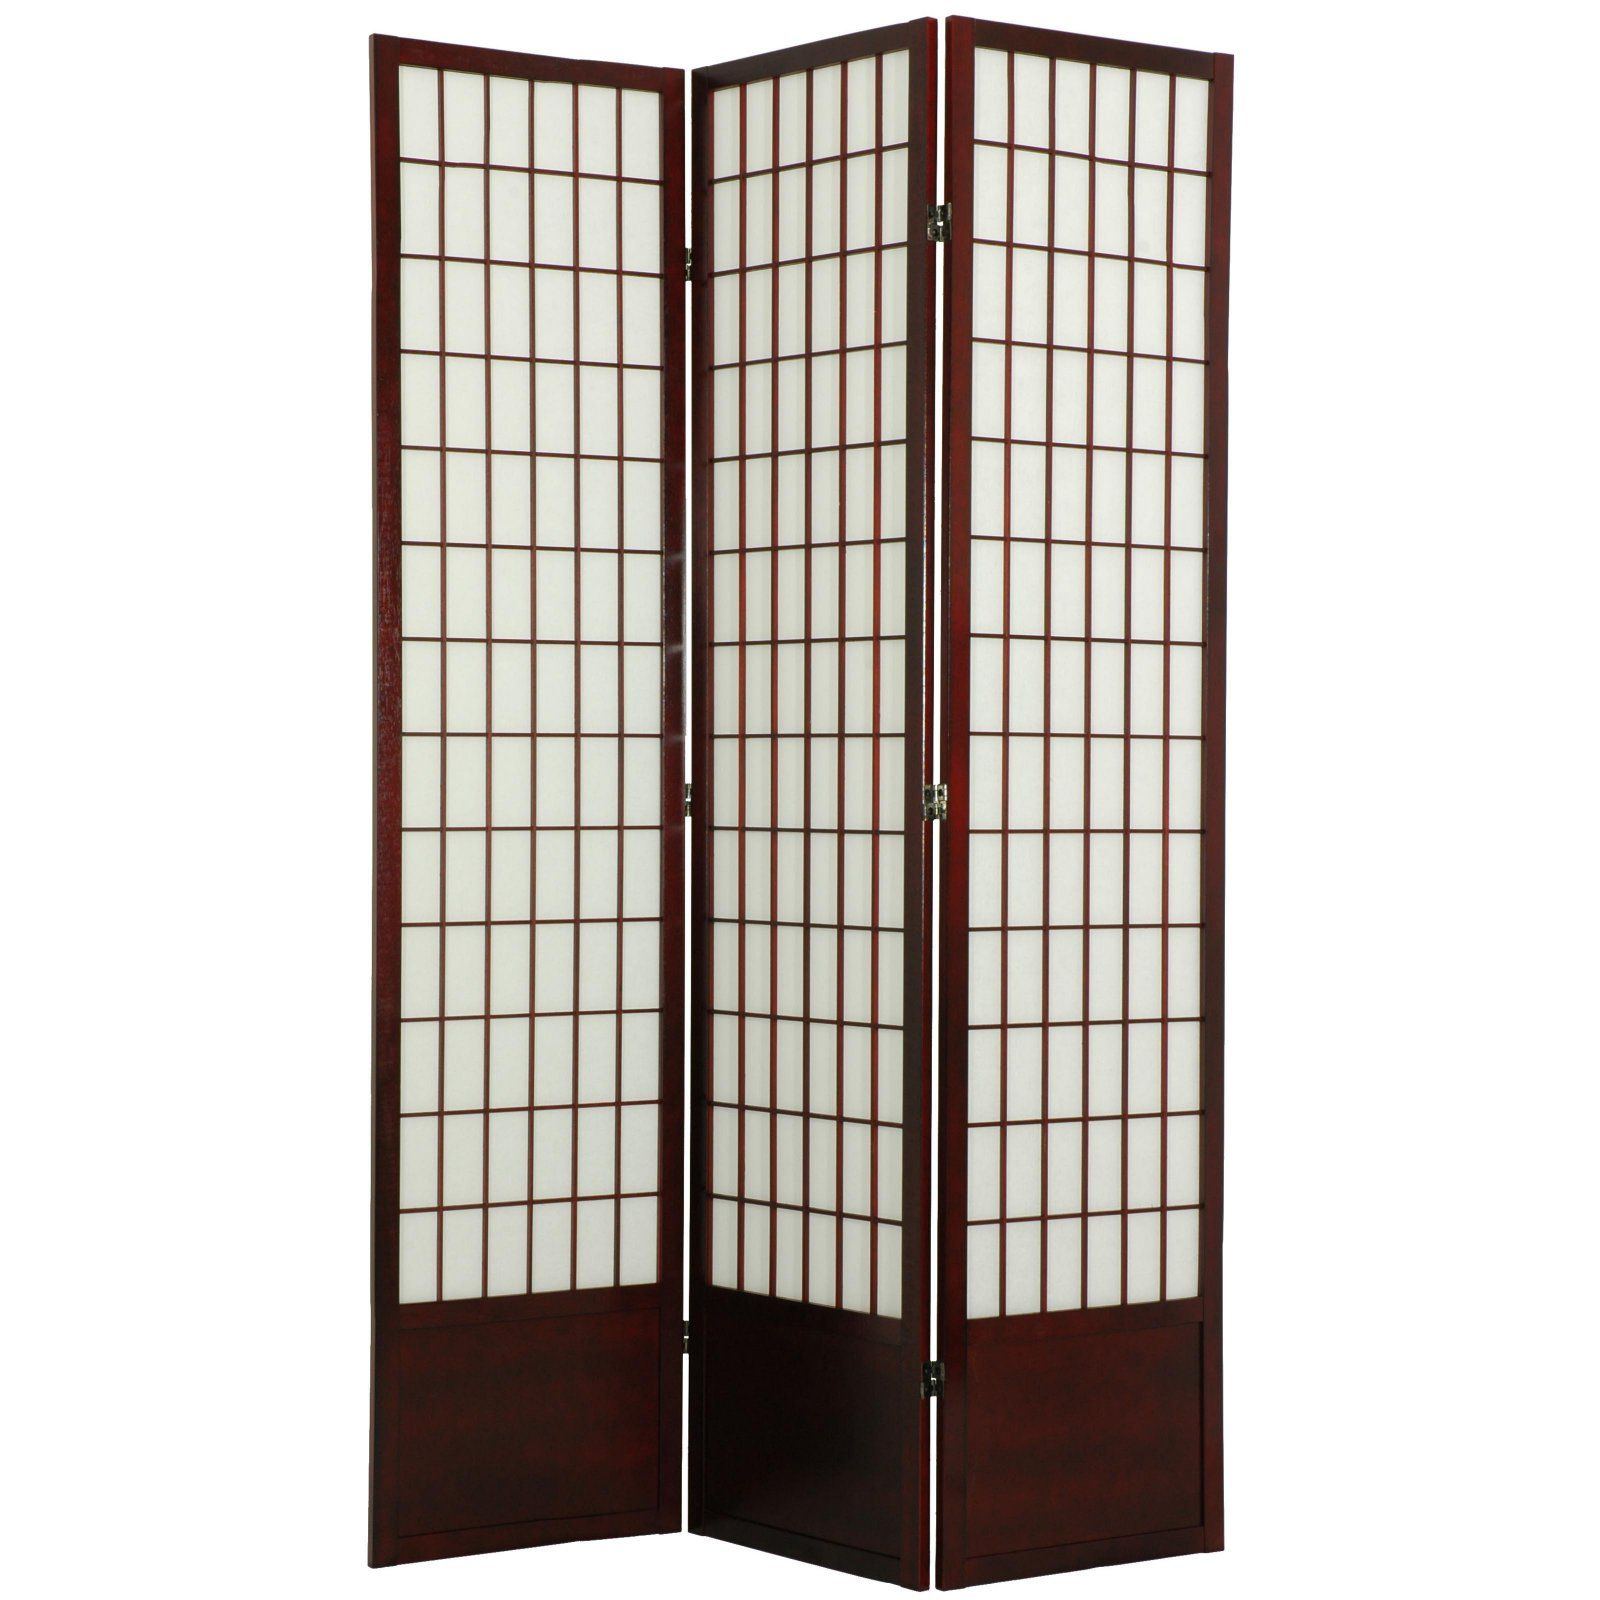 Oriental Furniture Window Pane Room Divider 84 Inch Rosewood